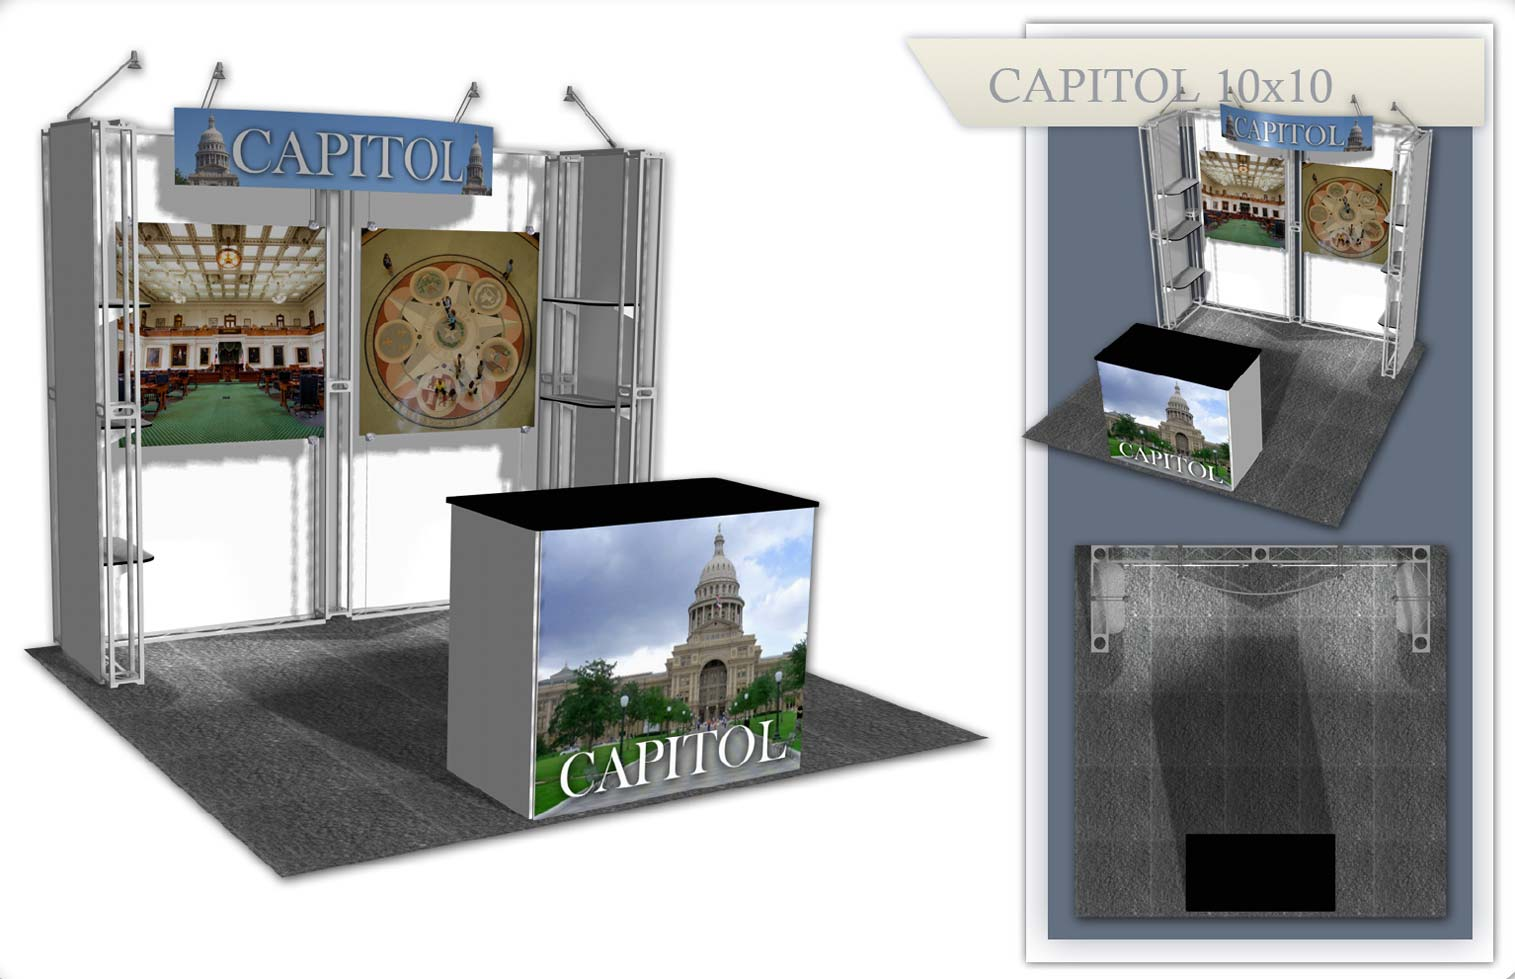 Used Trade Show Booth : Capitol used trade show booth xtreme xhibits